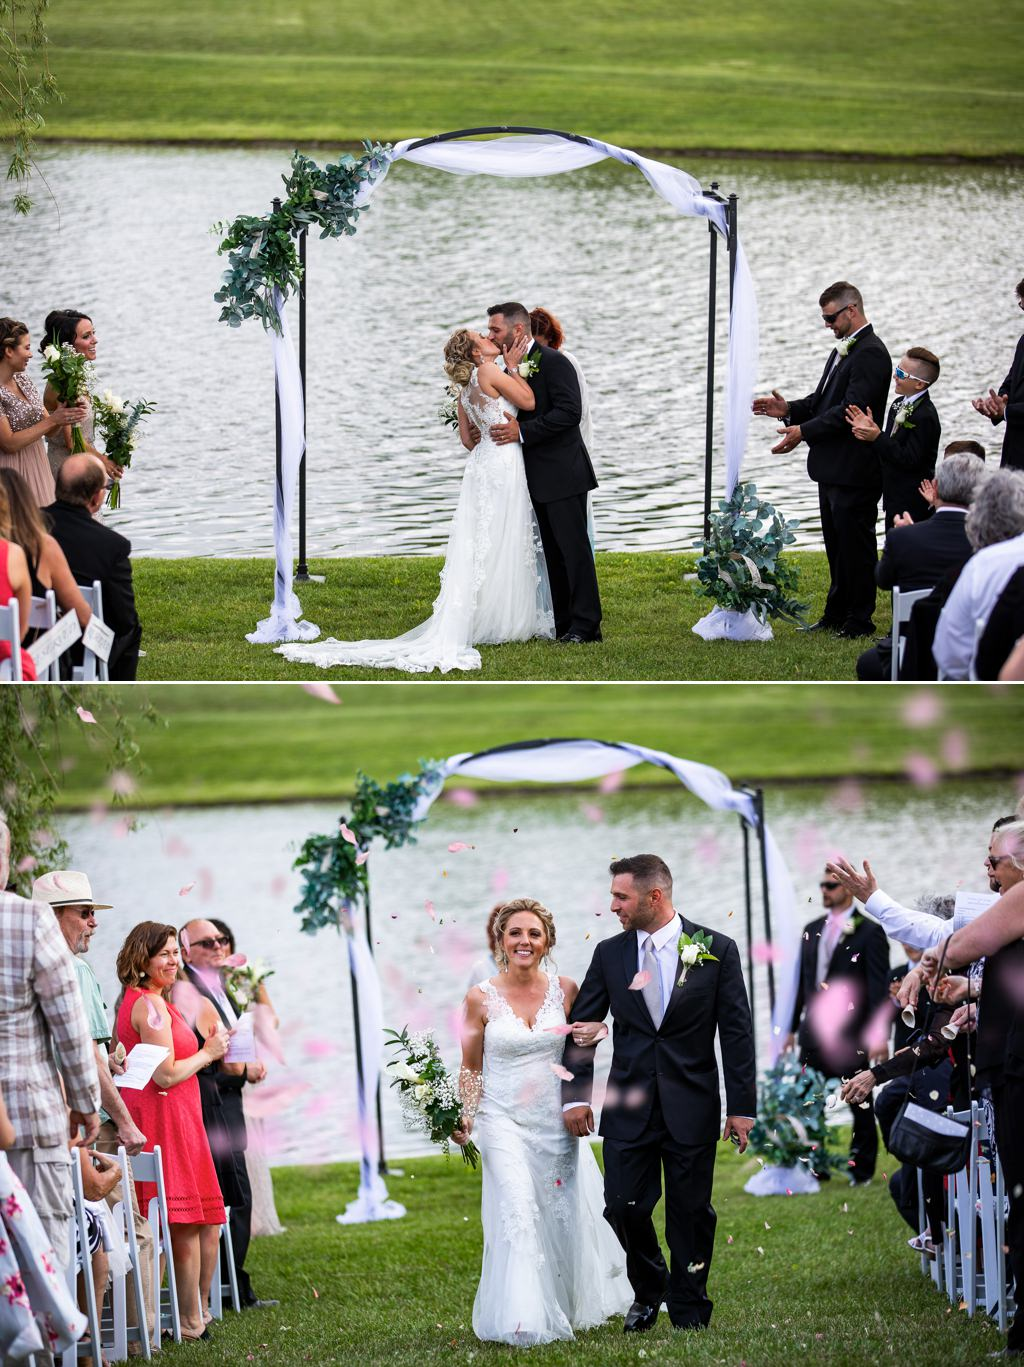 A bride and groom kissing while guests toss flower petals at them